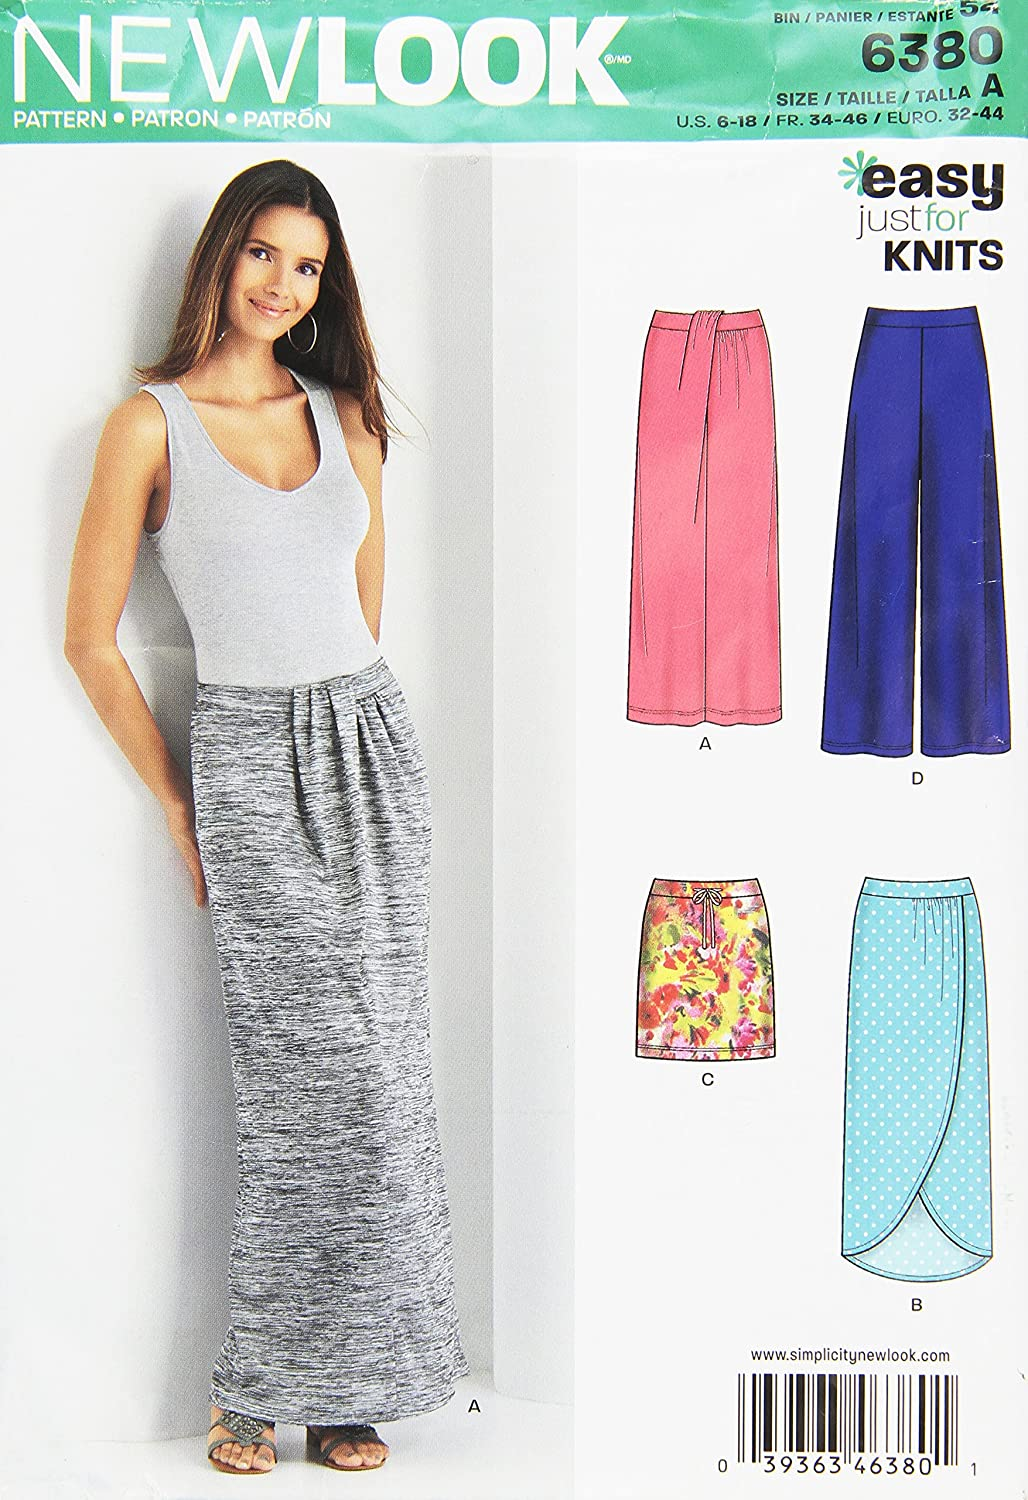 Misses Knit Skirts and Pants Size A New Look Sewing Pattern 6380